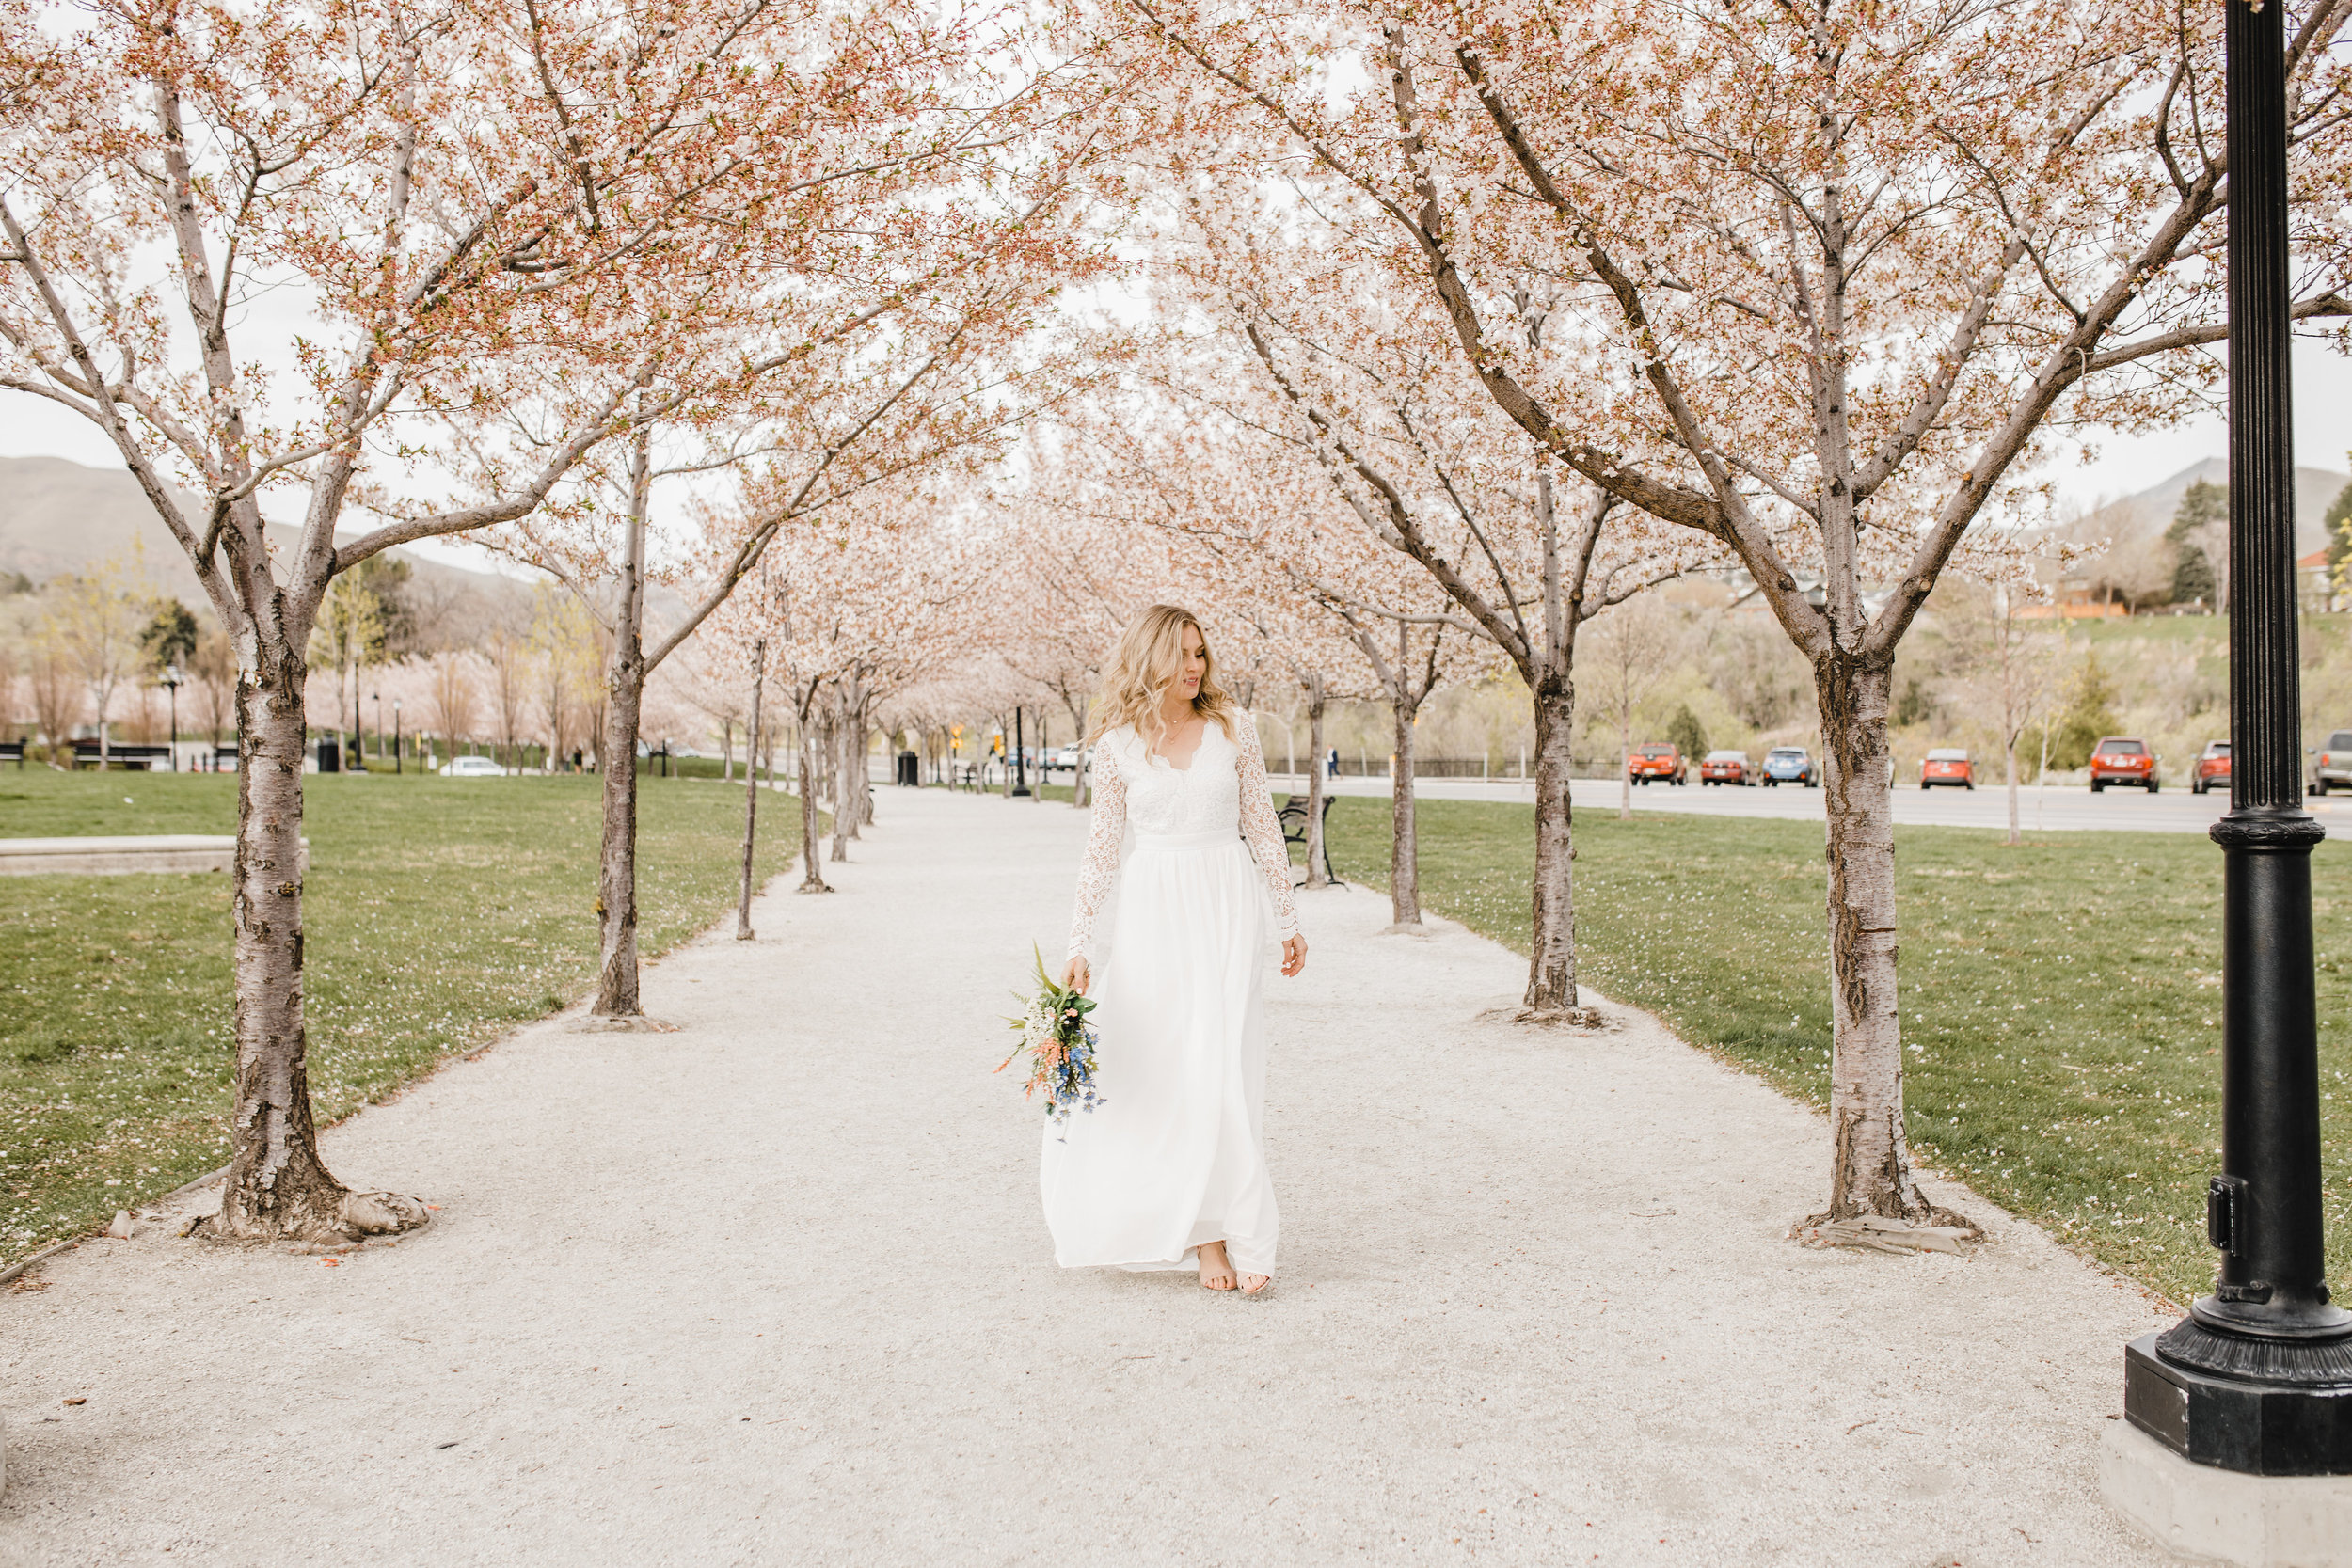 Professional wedding photographer in cache valley utah spring wedding lace wedding dress bridal photographer